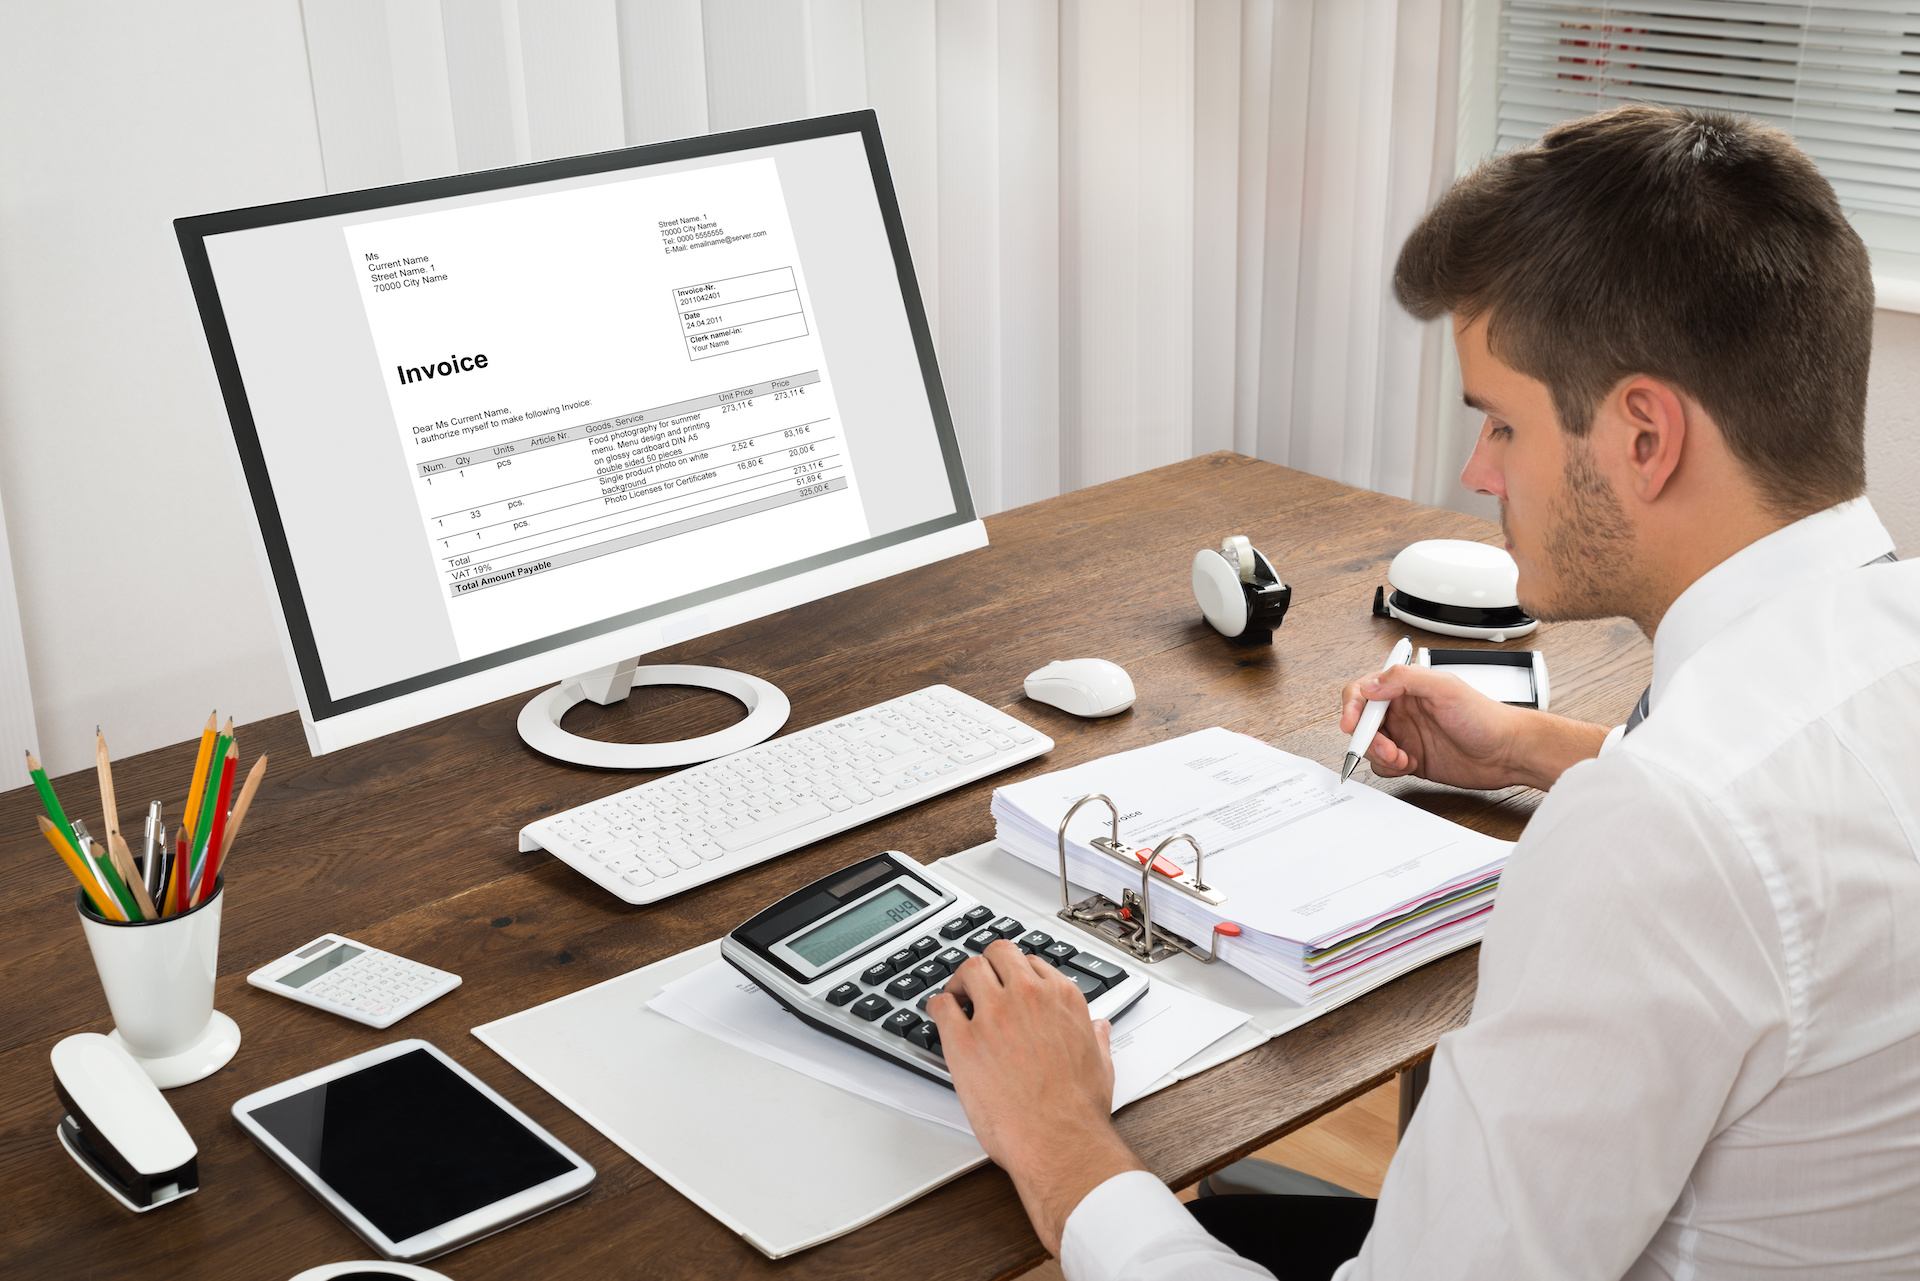 Accountant using invoice software